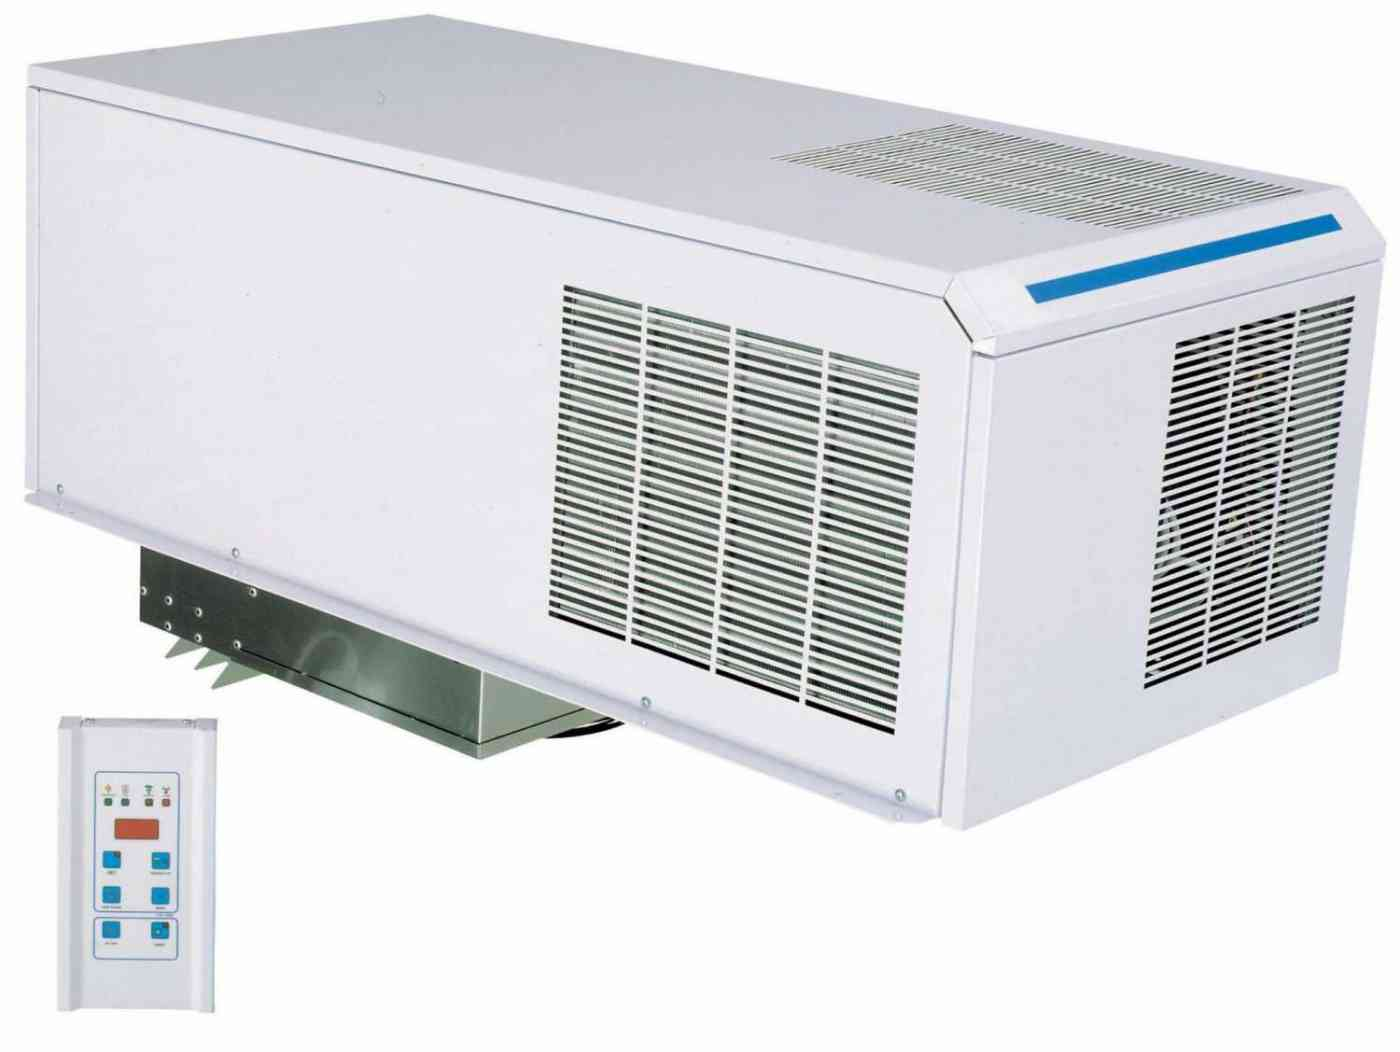 Ceiling mounted refrigeration unit